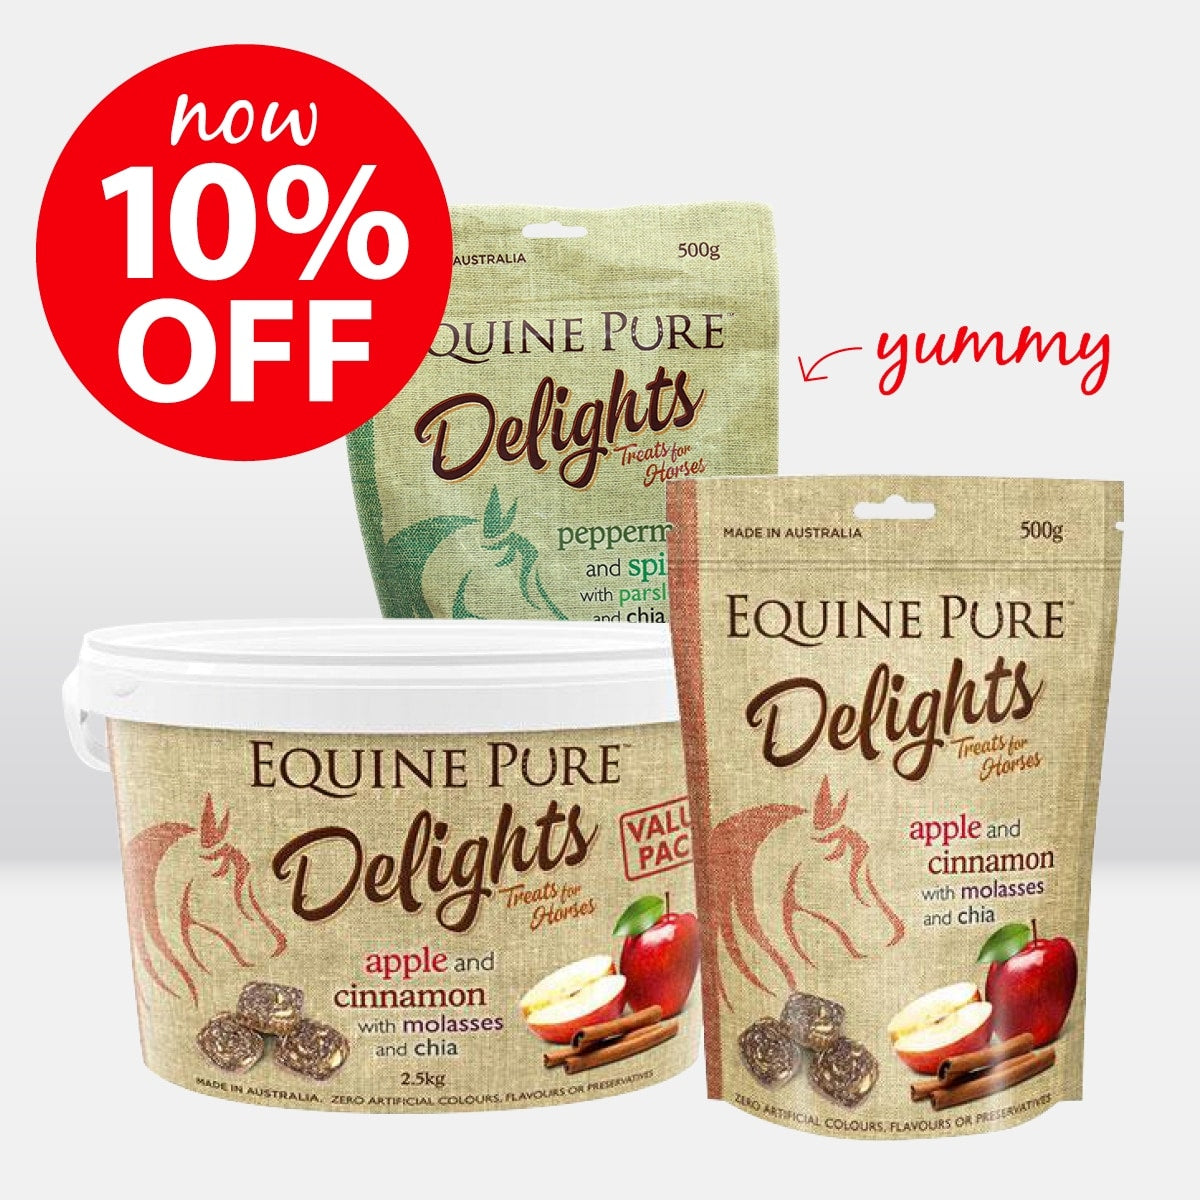 Equine Pure Delights ON SALE